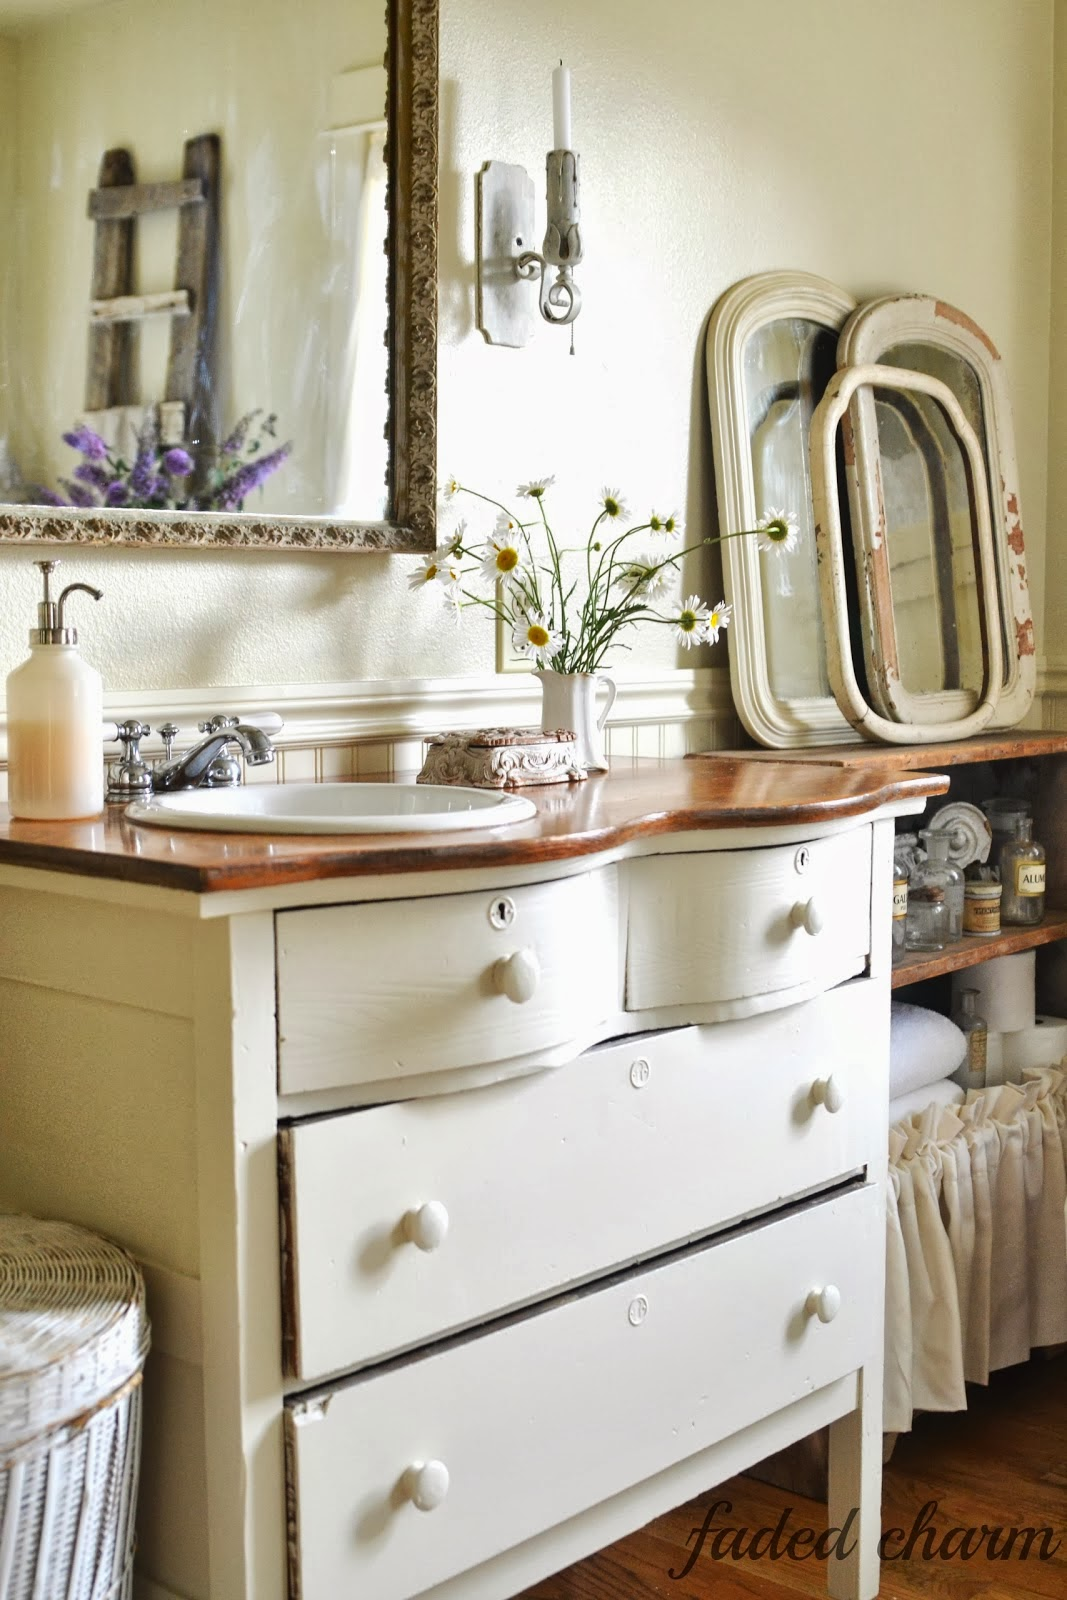 Bathroom Dresser: I Love That Junk: A Beautifully Reclaimed Bathroom Tour